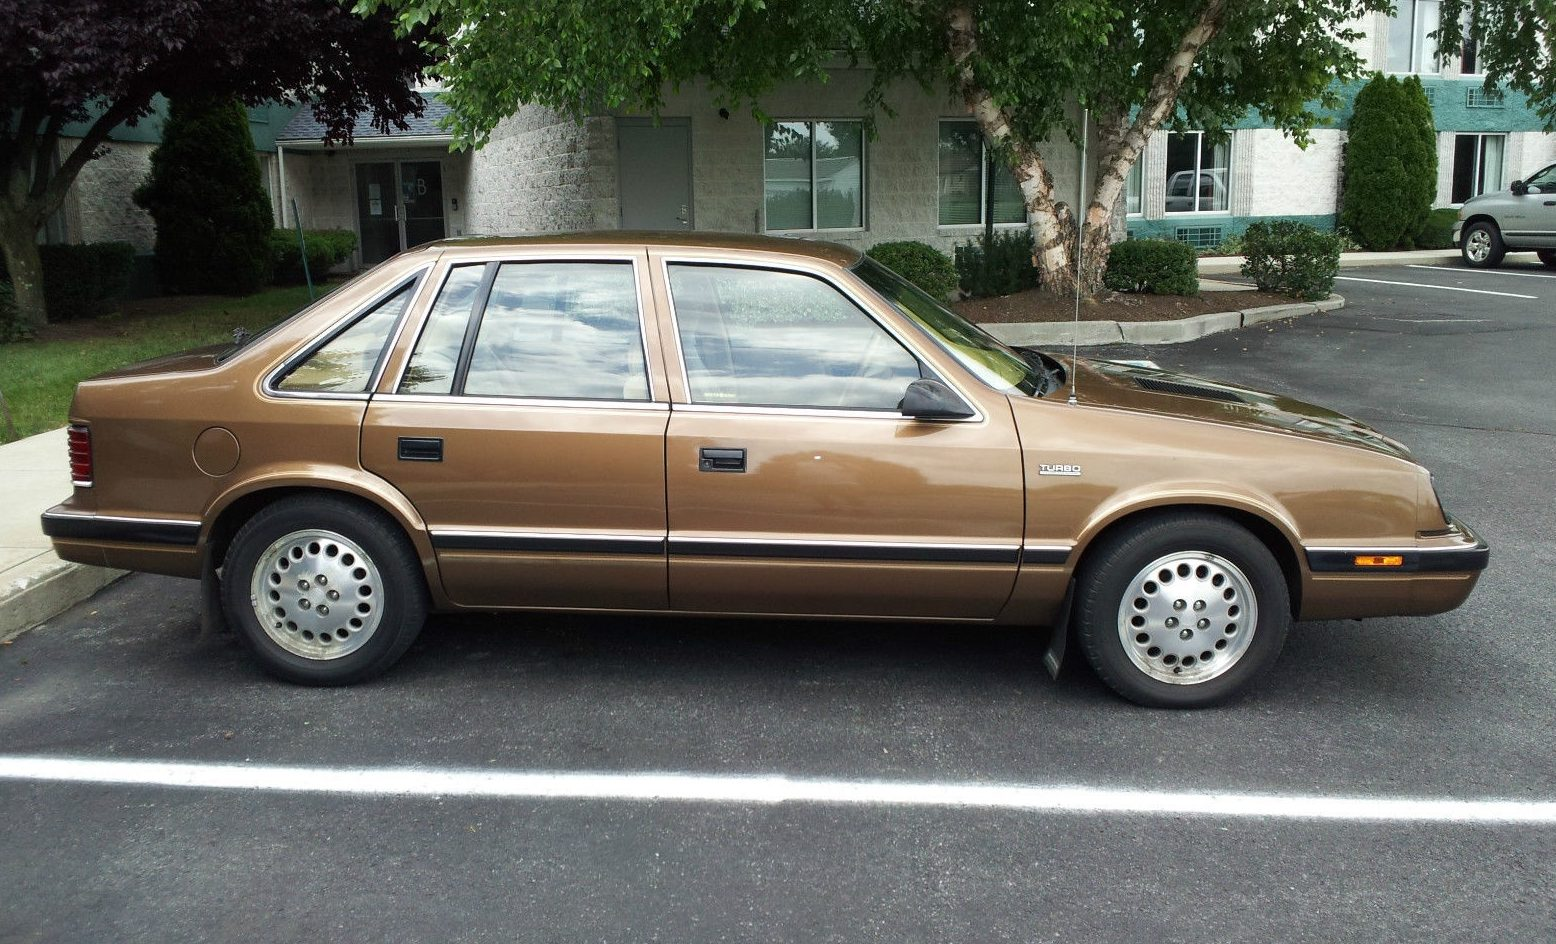 2016 Honda Crv For Sale >> Grandma Owned: 1986 Chrysler LeBaron GTS